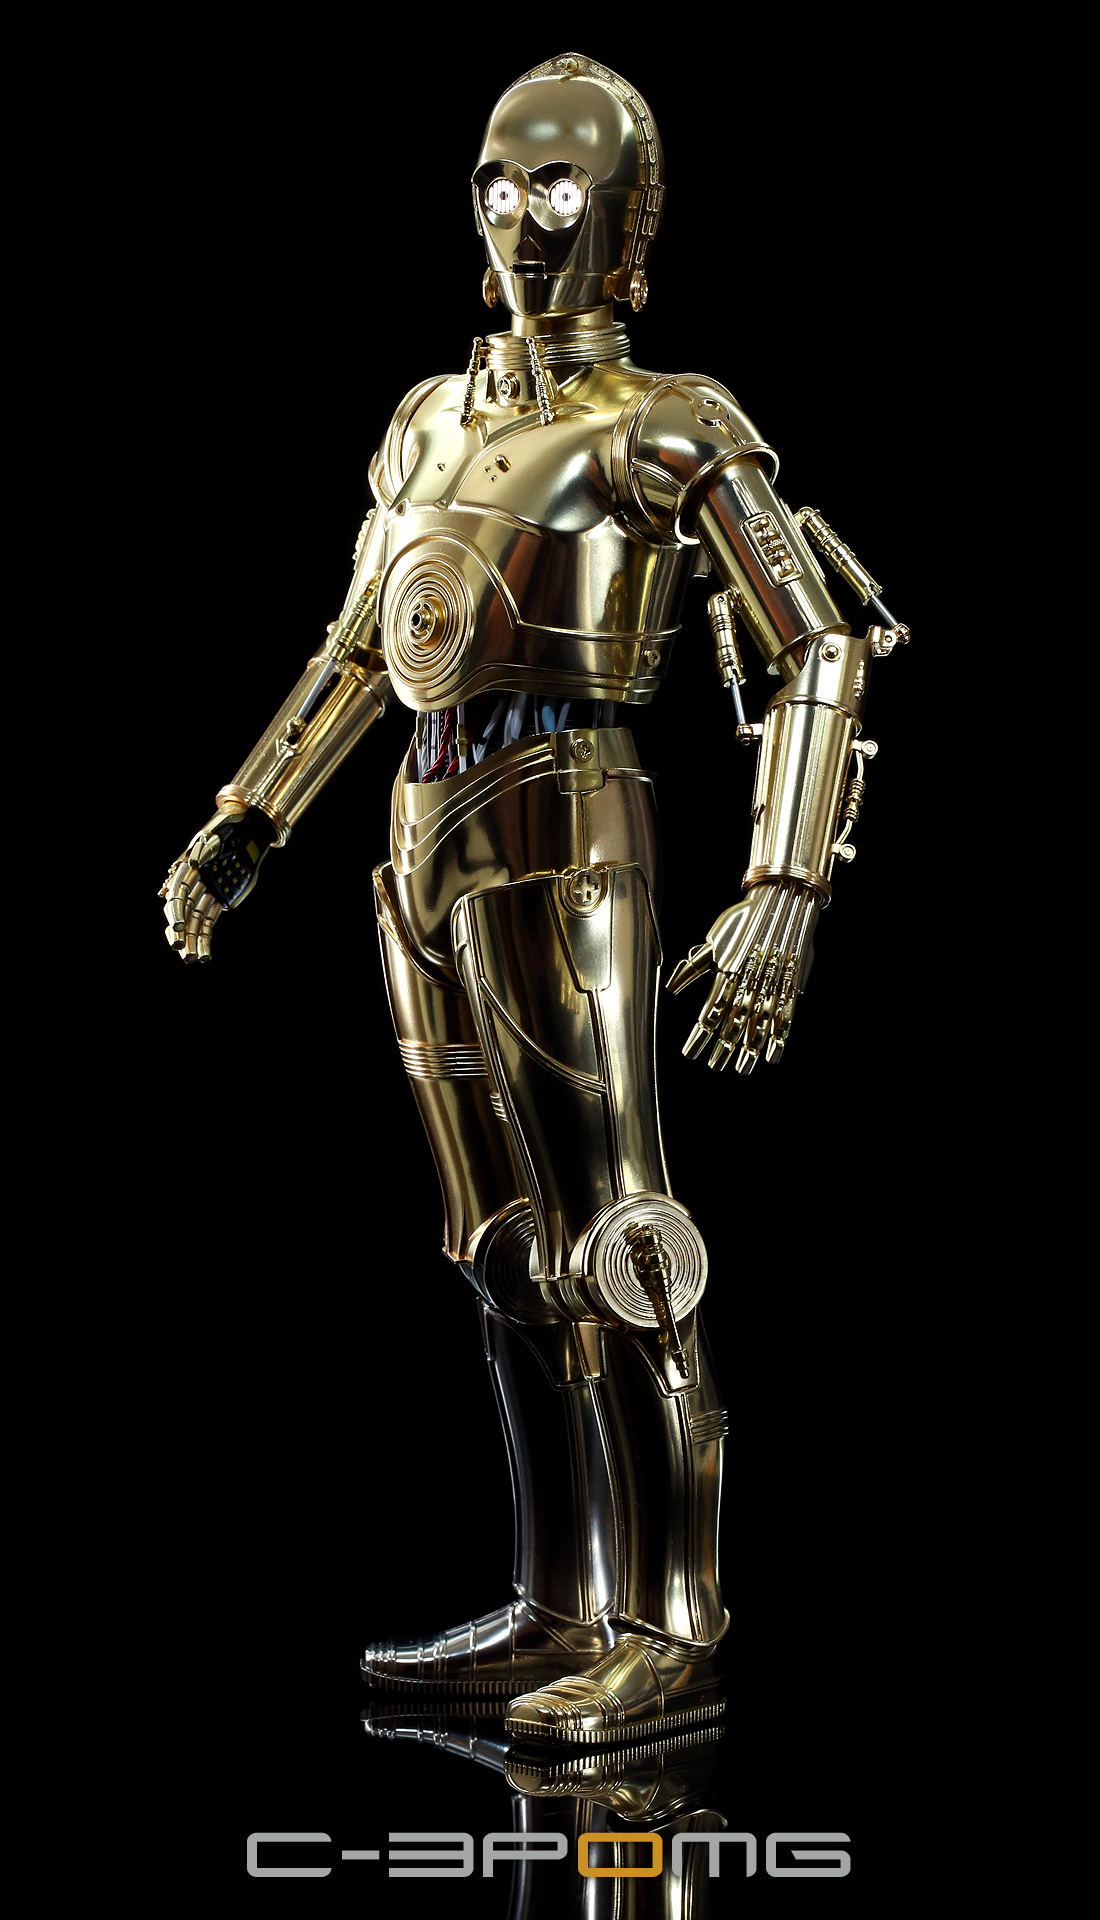 [Bandai] Star Wars: C-3PO - Perfect Model 1/6 scale - LANÇADO!!! - Página 2 C-3PO1029_zps0a47ccf3